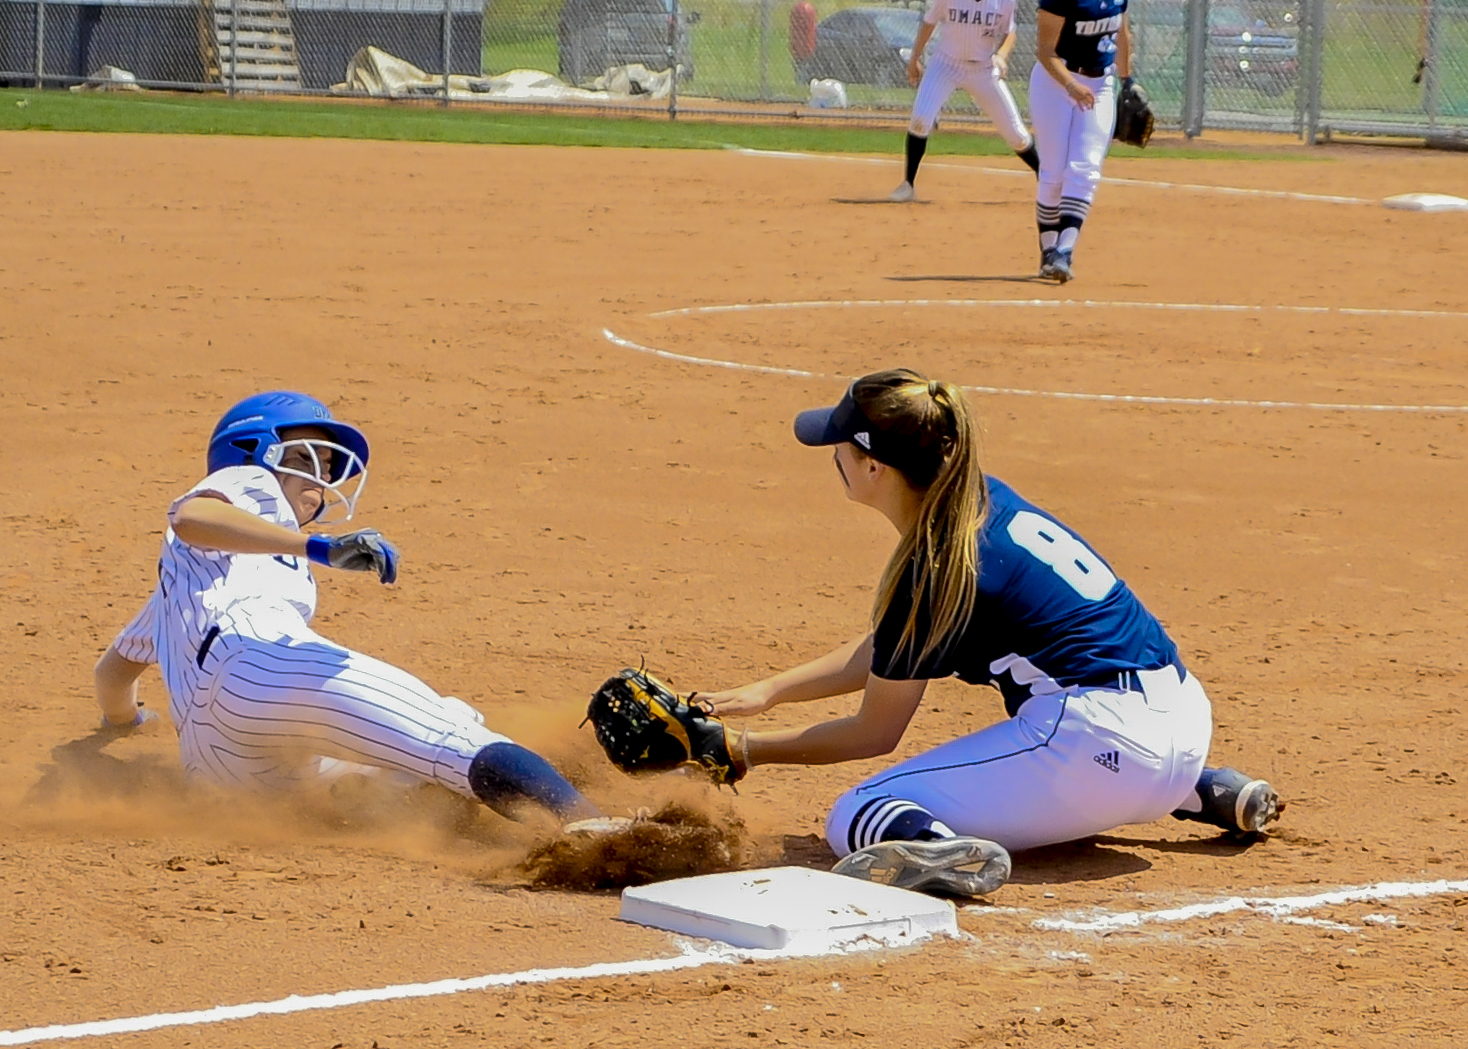 DMACC softball team beats ICCC and SWCC; clinches third consecutive ICCAC championship